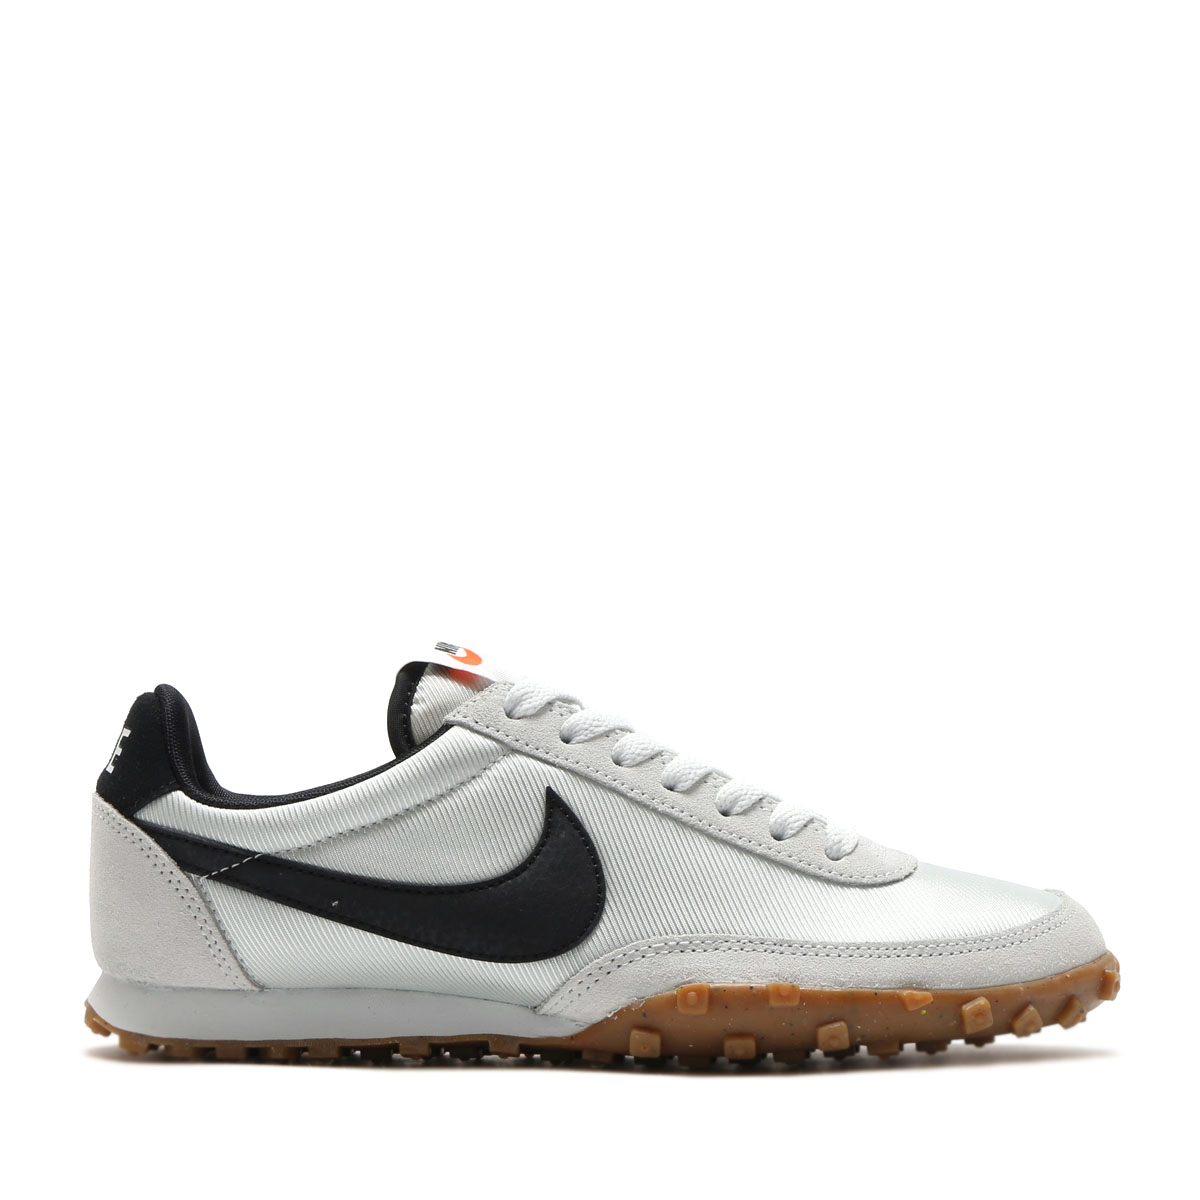 NIKE W WAFFLE RACER (나이키 womens 와플 레이서) (OFF WHITE/BLACK-SAFETY ORANGE-GUM MED BROWN) 17 SP-I